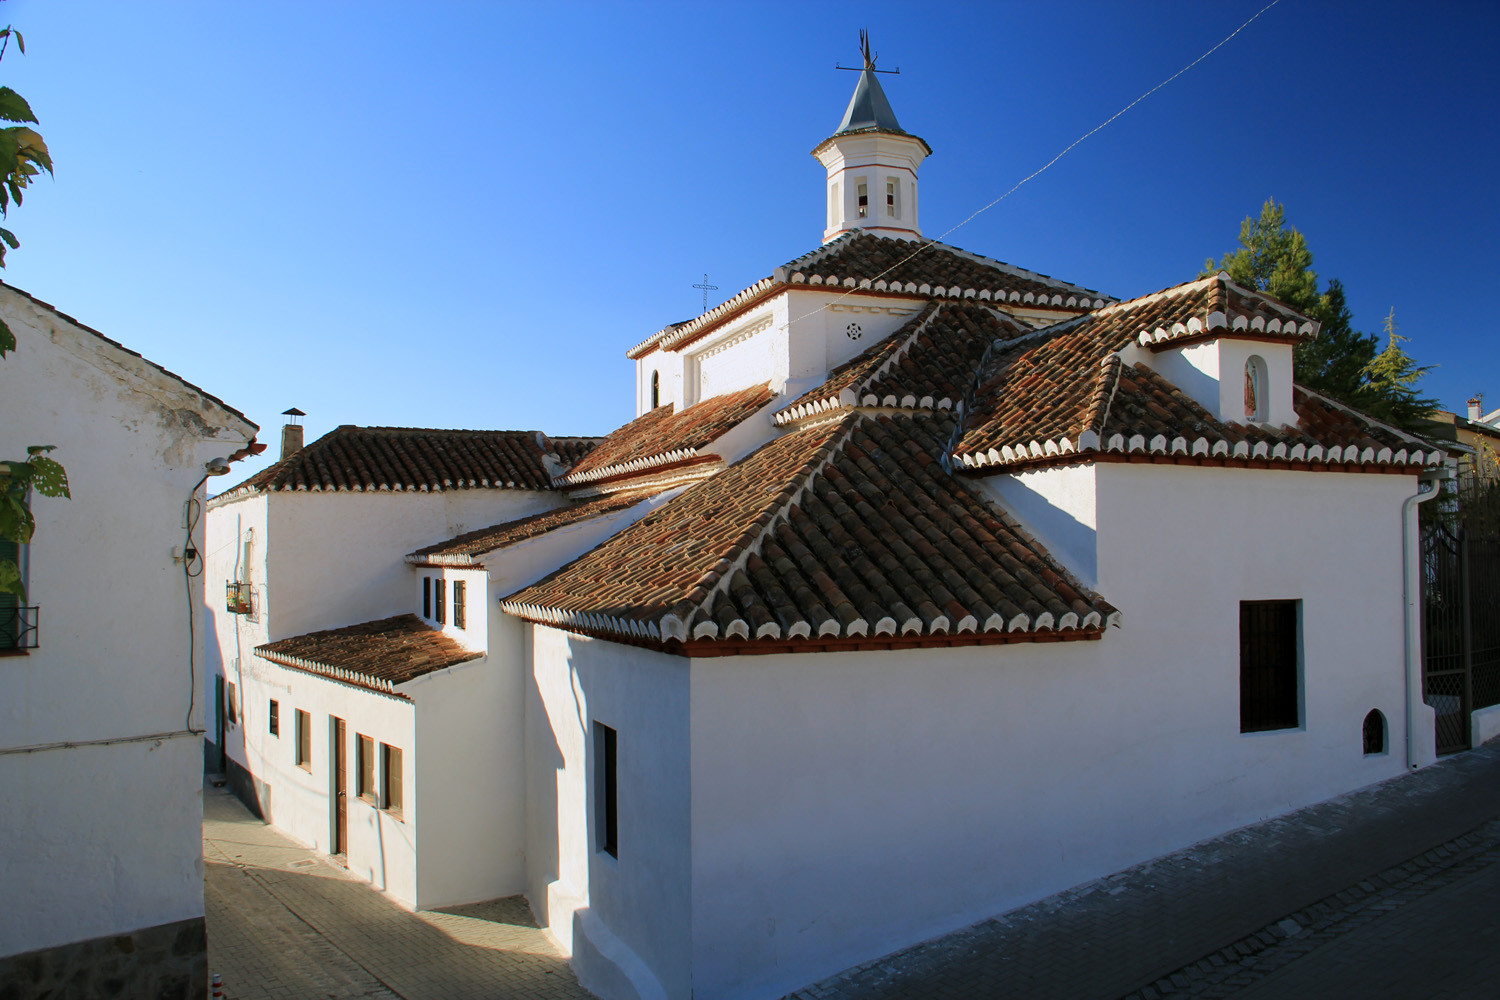 The Chapel of Dúrcal